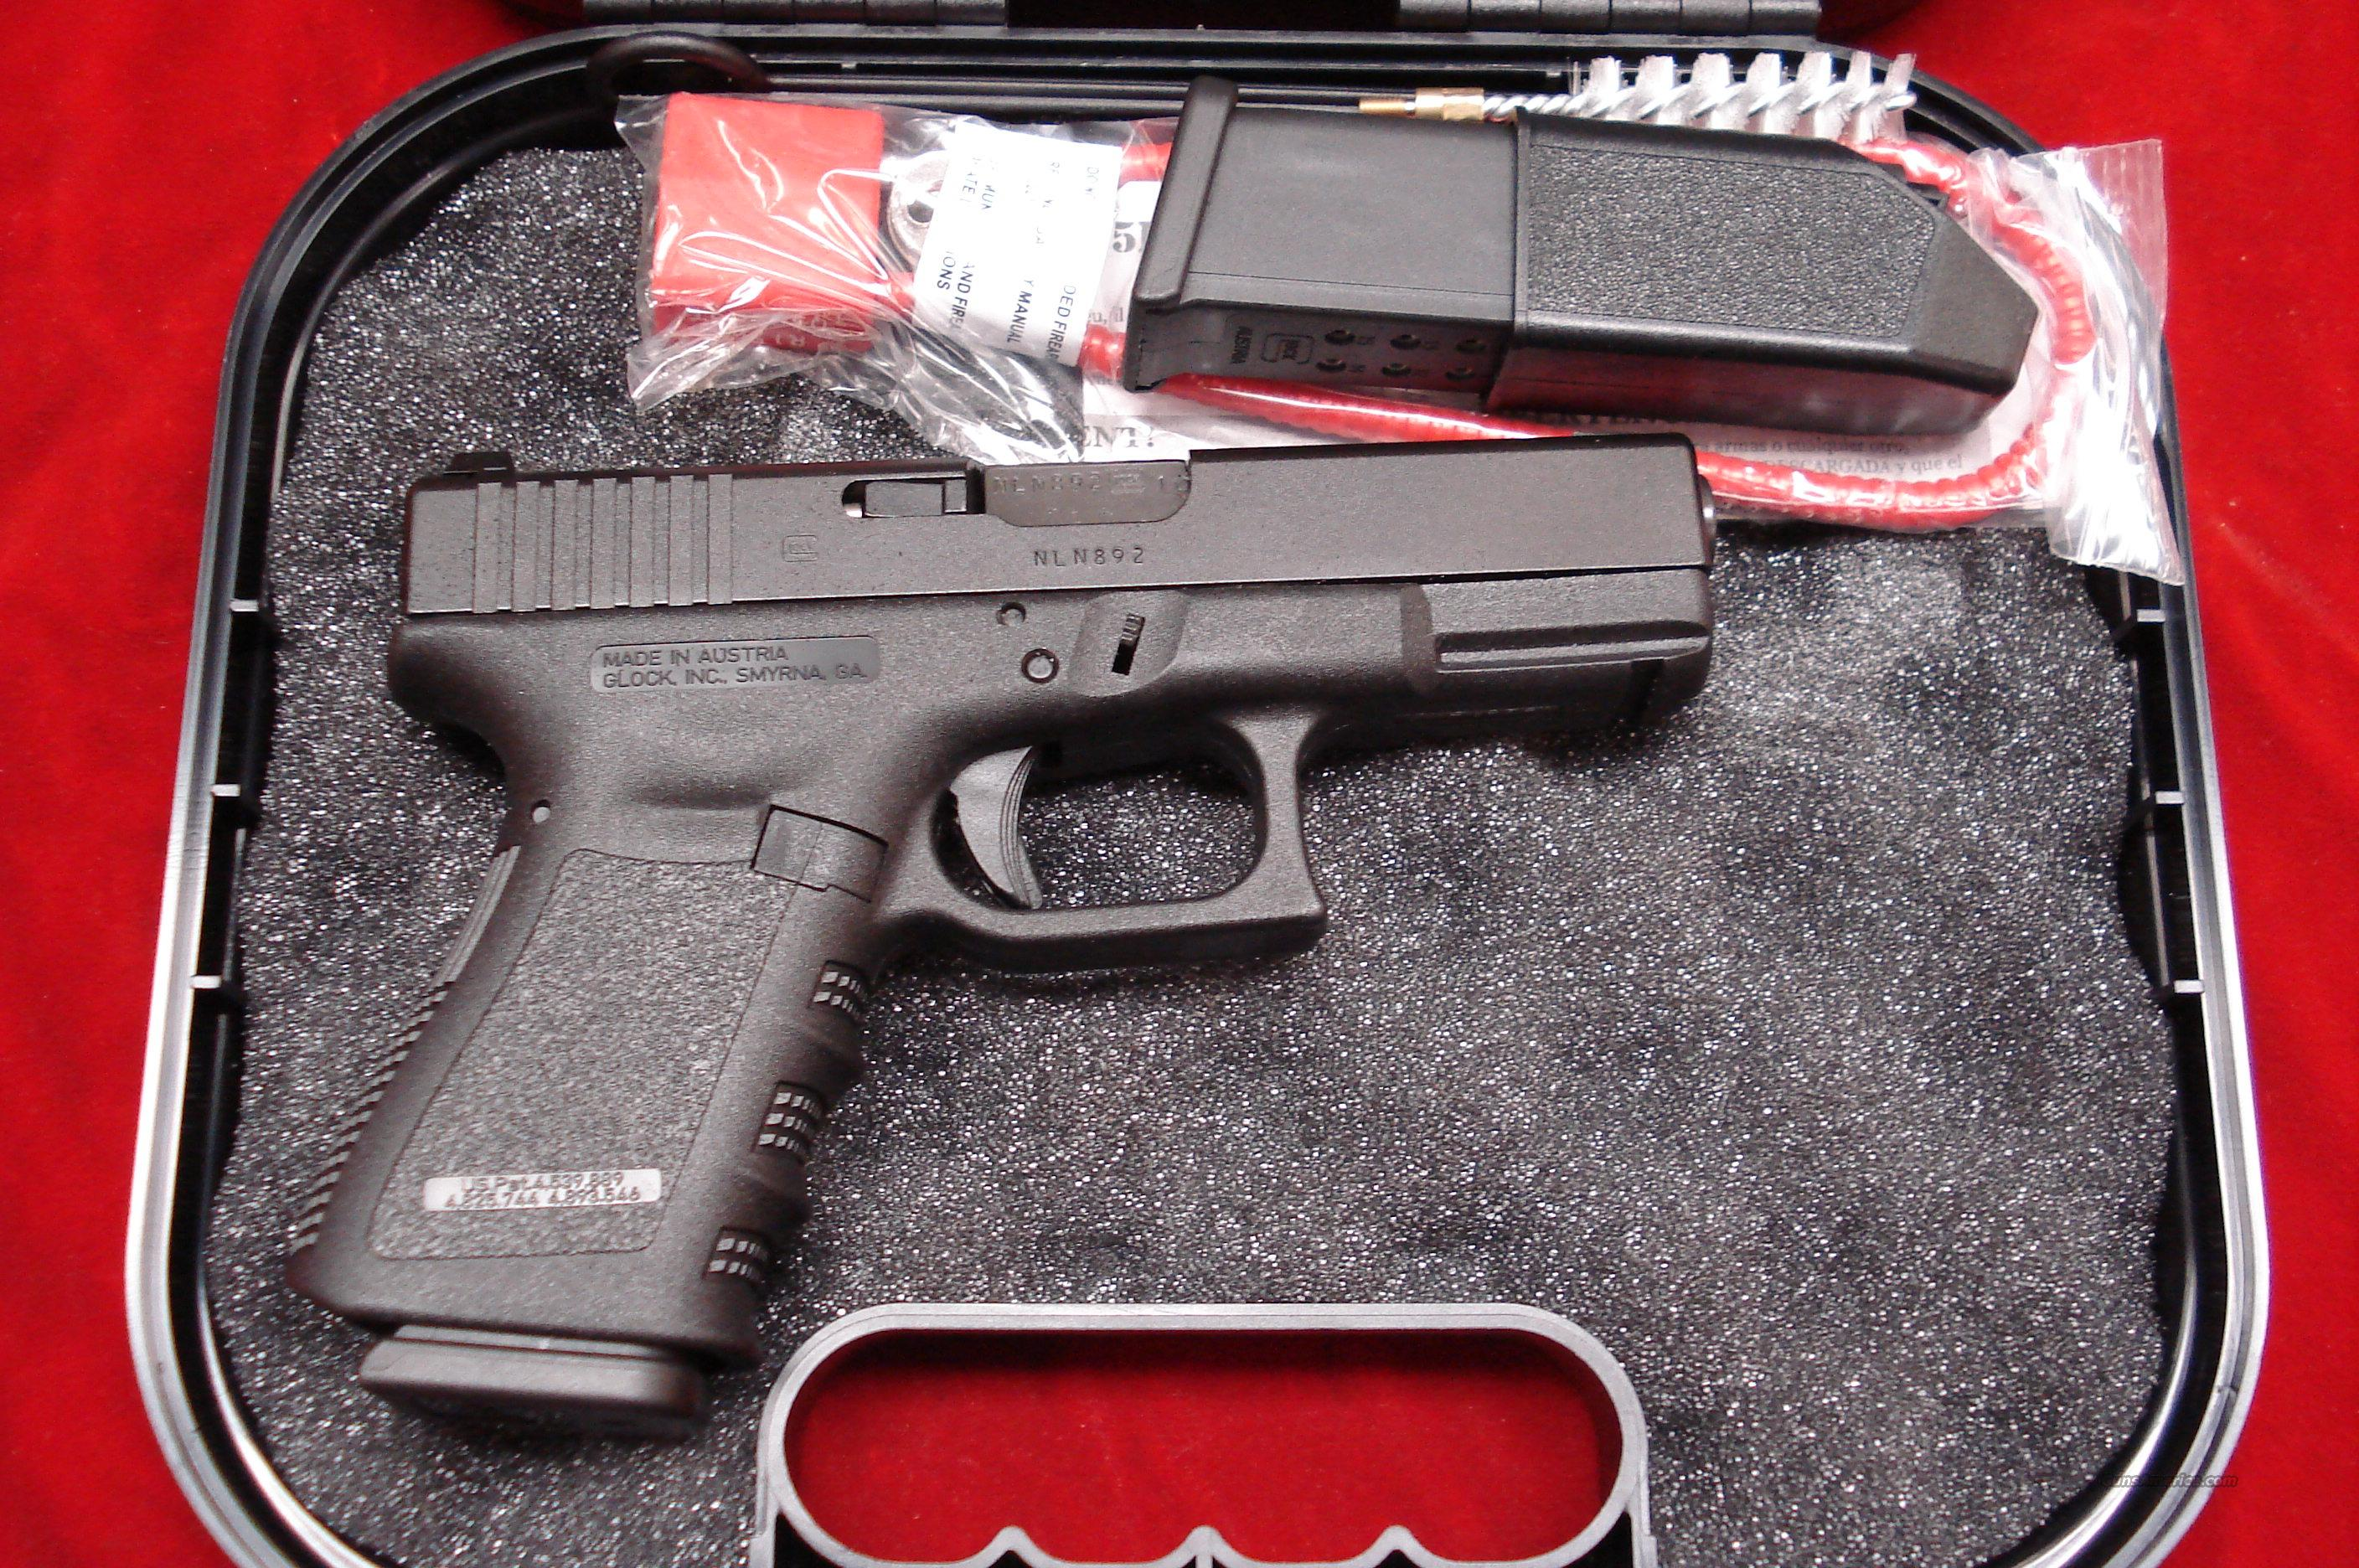 GLOCK MODEL 19 9MM HIGH CAPACITY WITH FACTORY  NIGHT SIGHTS  NEW  Guns > Pistols > Glock Pistols > 19